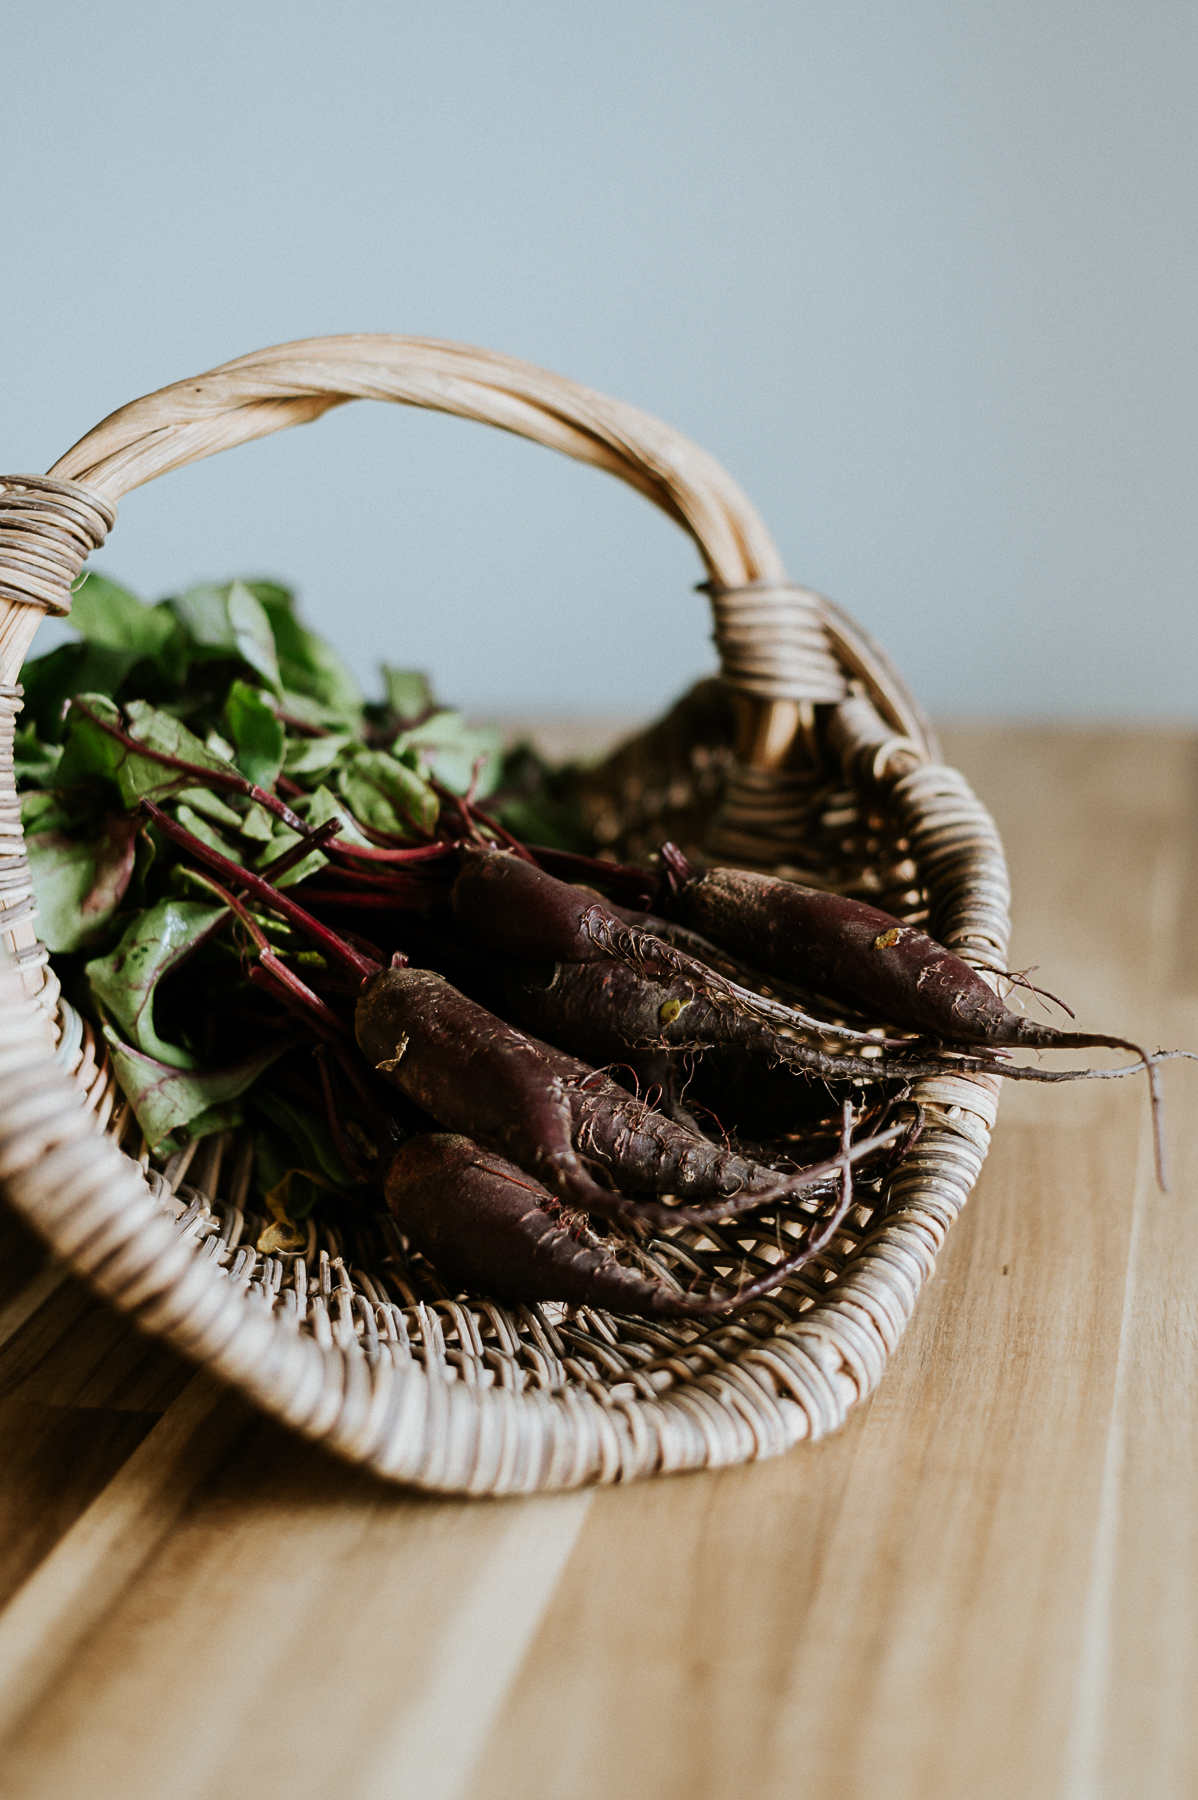 Roasted Beet Salad With Herb & Mint Dressing-3.jpg